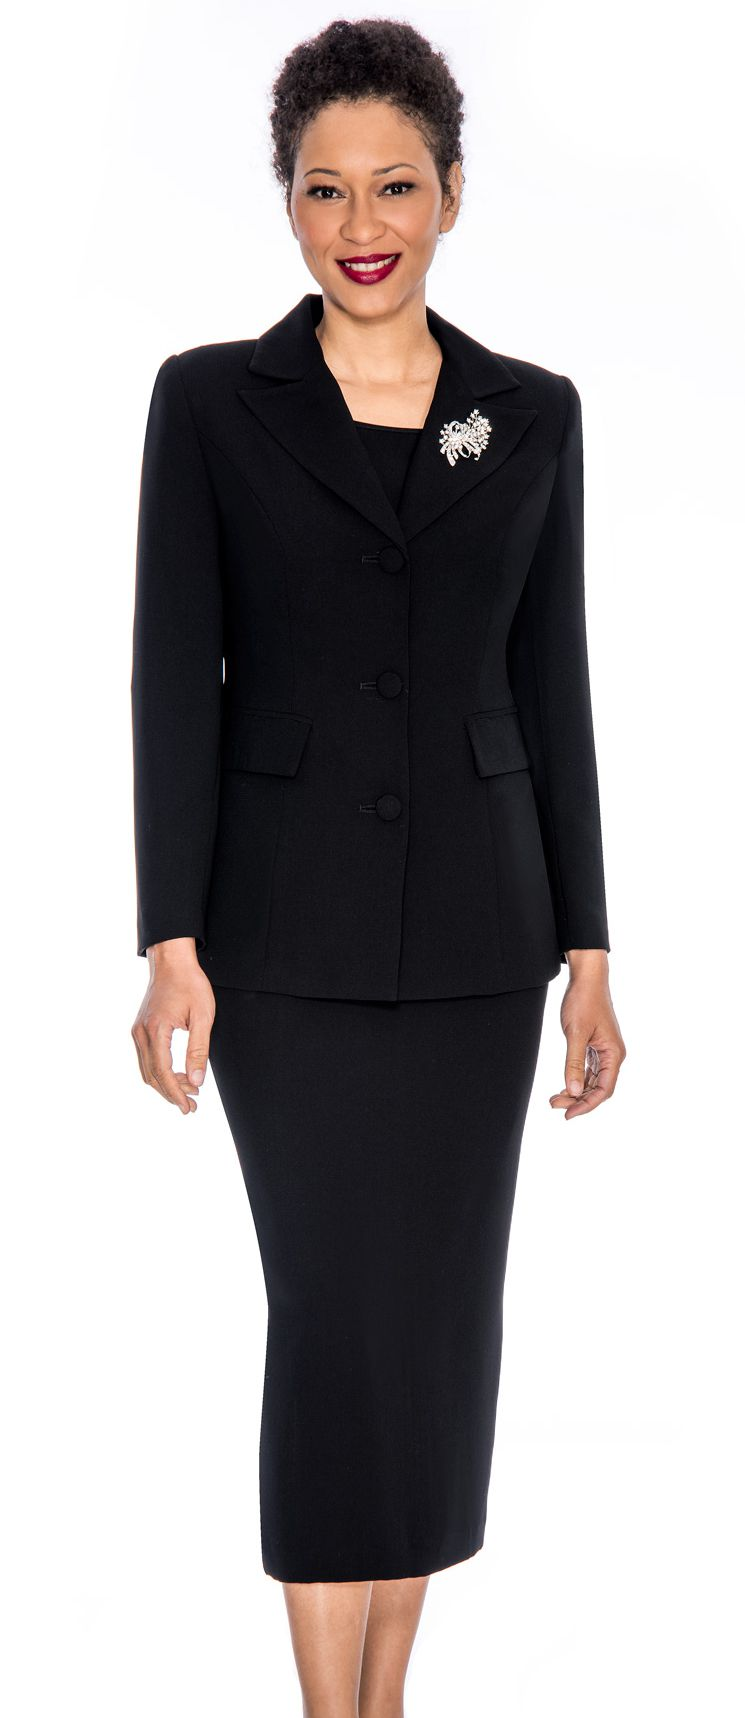 Giovanna Usher Suit 0655-Black - Church Suits For Less